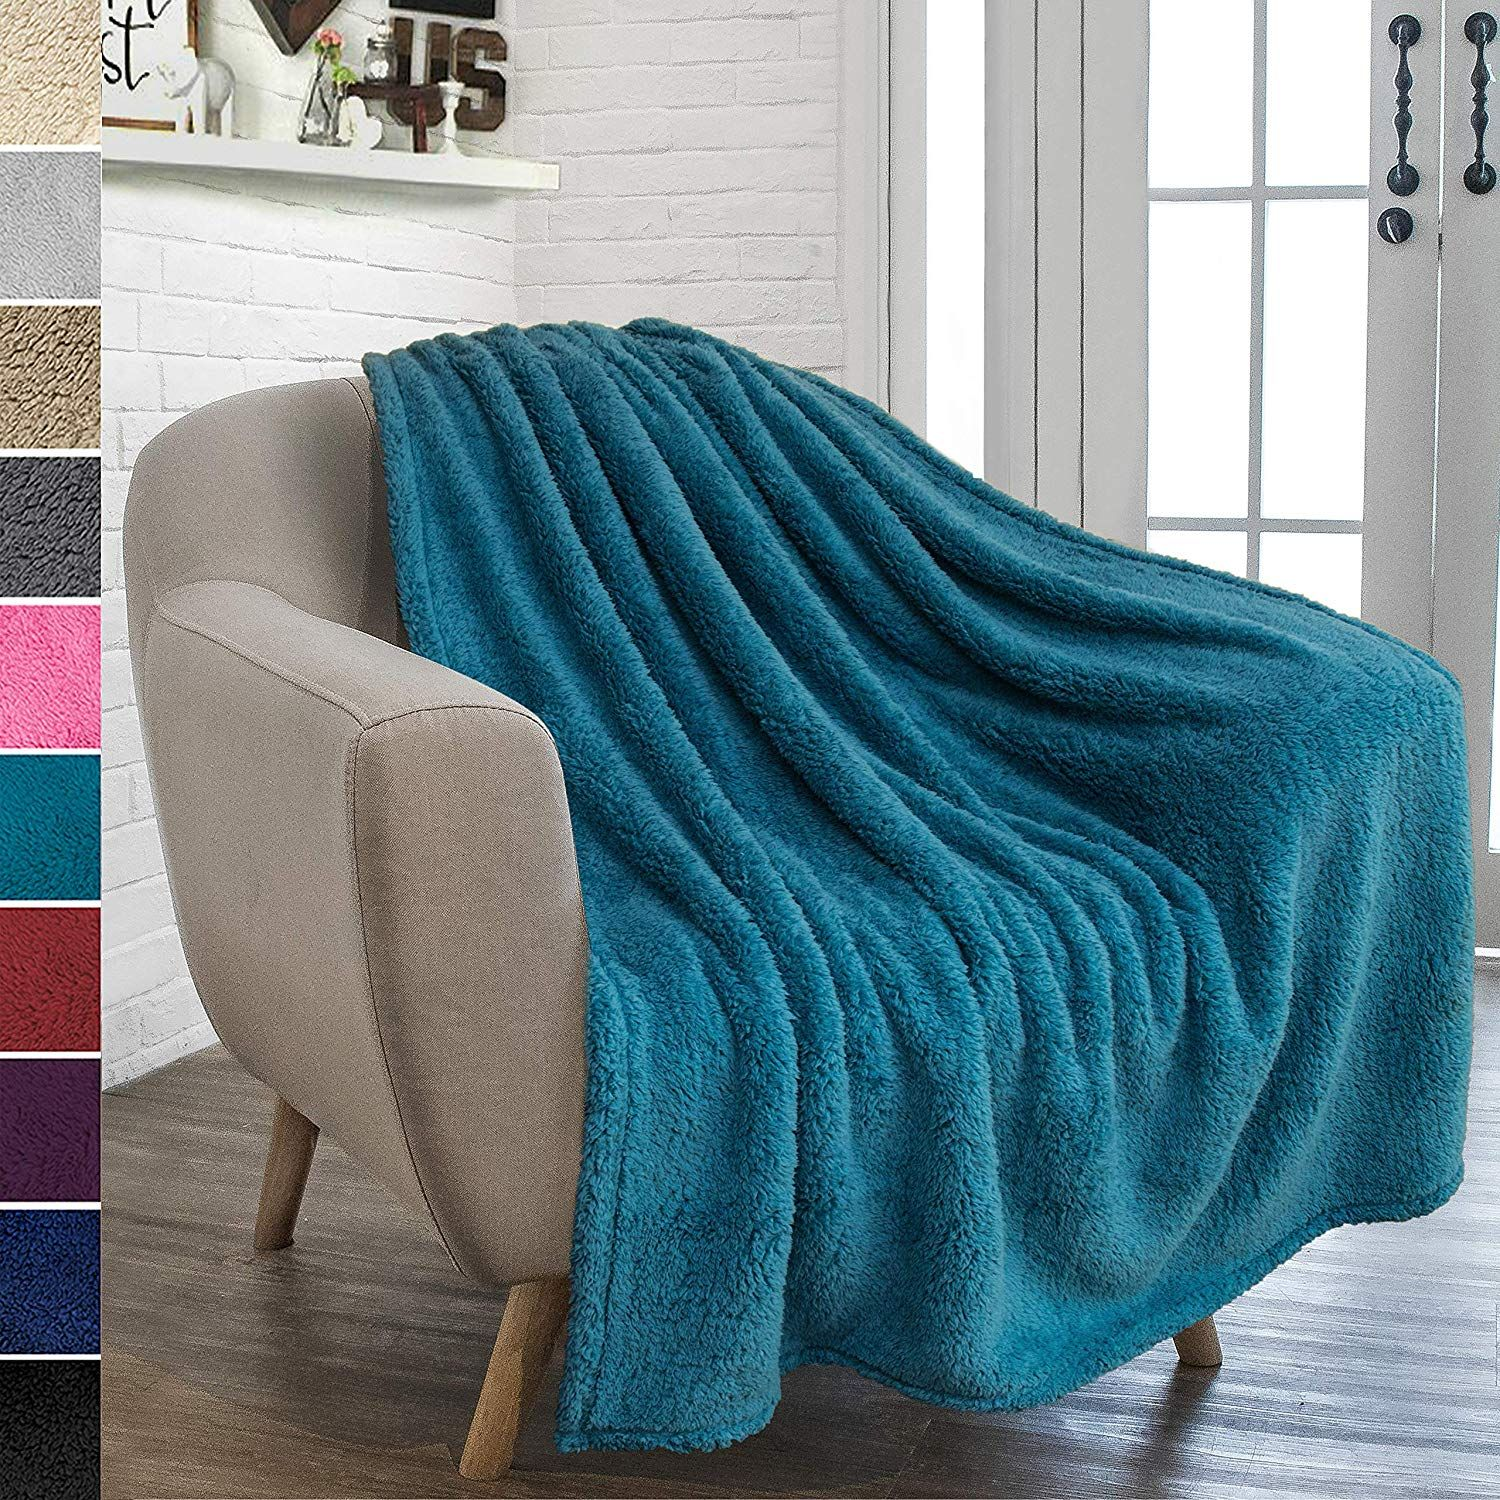 Pavilia Blankets Sale Online Sale Ease Bedding With Style Turquoise Blanket Throw Blanket